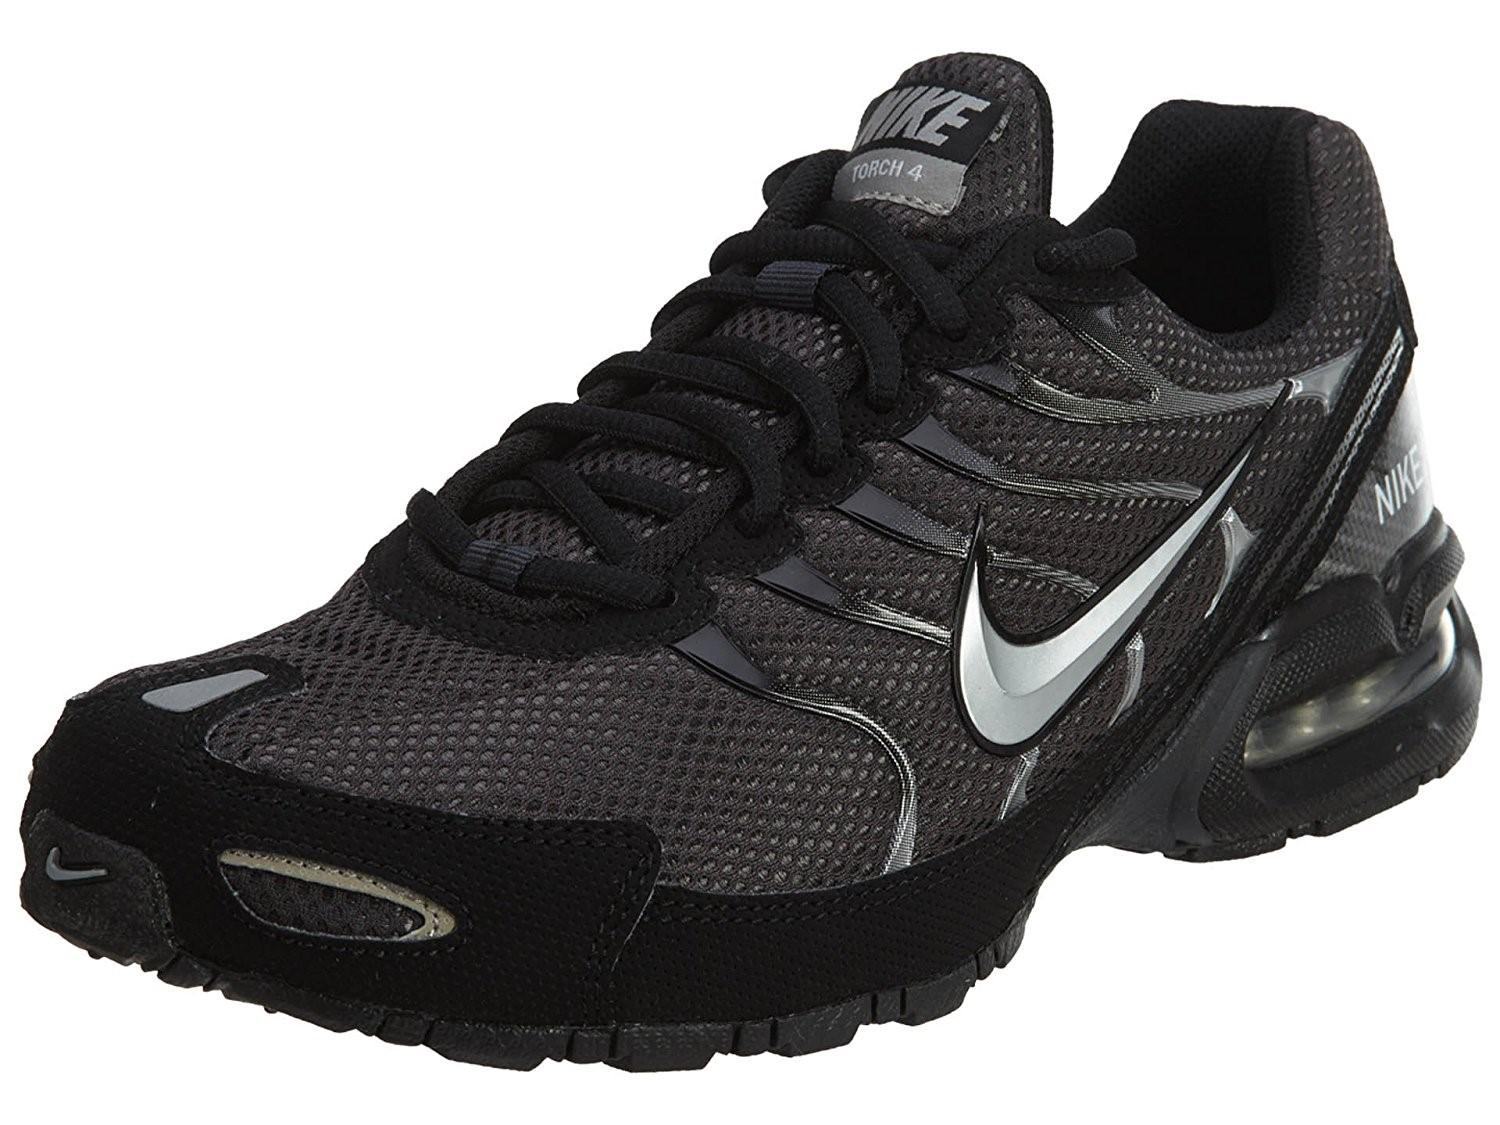 meet 91341 6dc4a Lyst - Nike Air Max Torch 4 Running Shoe Obsidian white wolf Grey ...